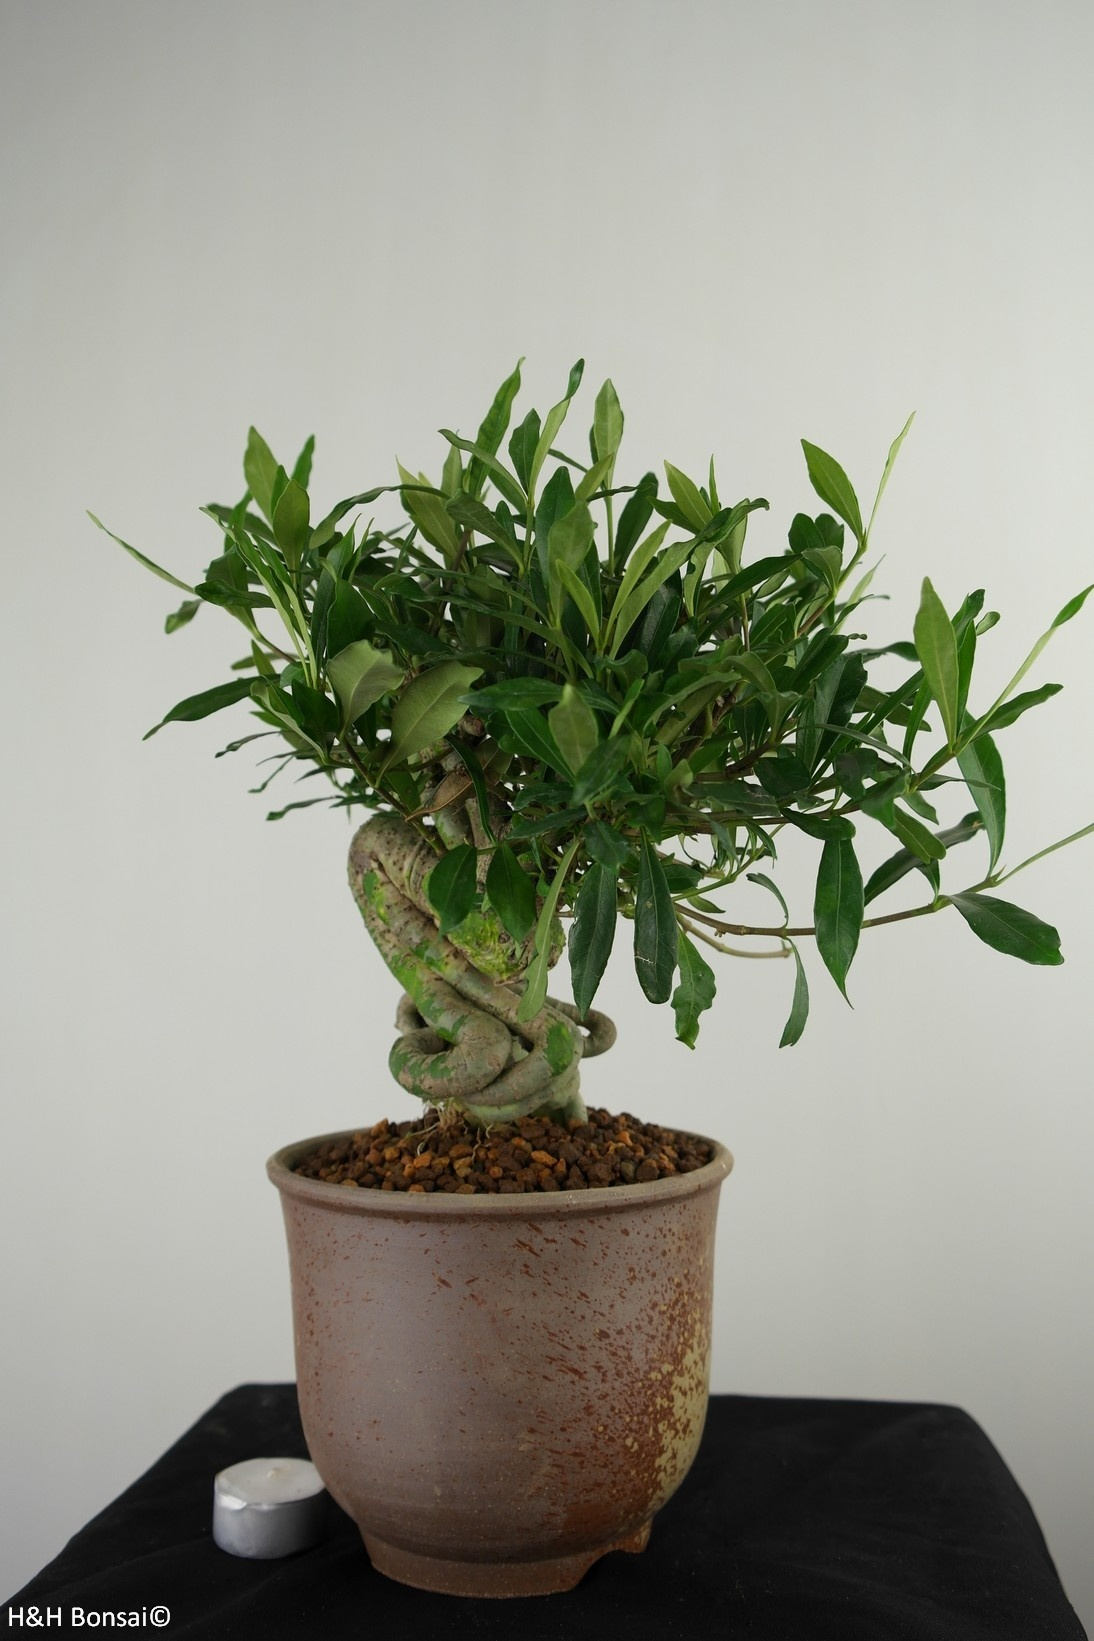 Bonsai Gardenia jasminoides, no. 7521